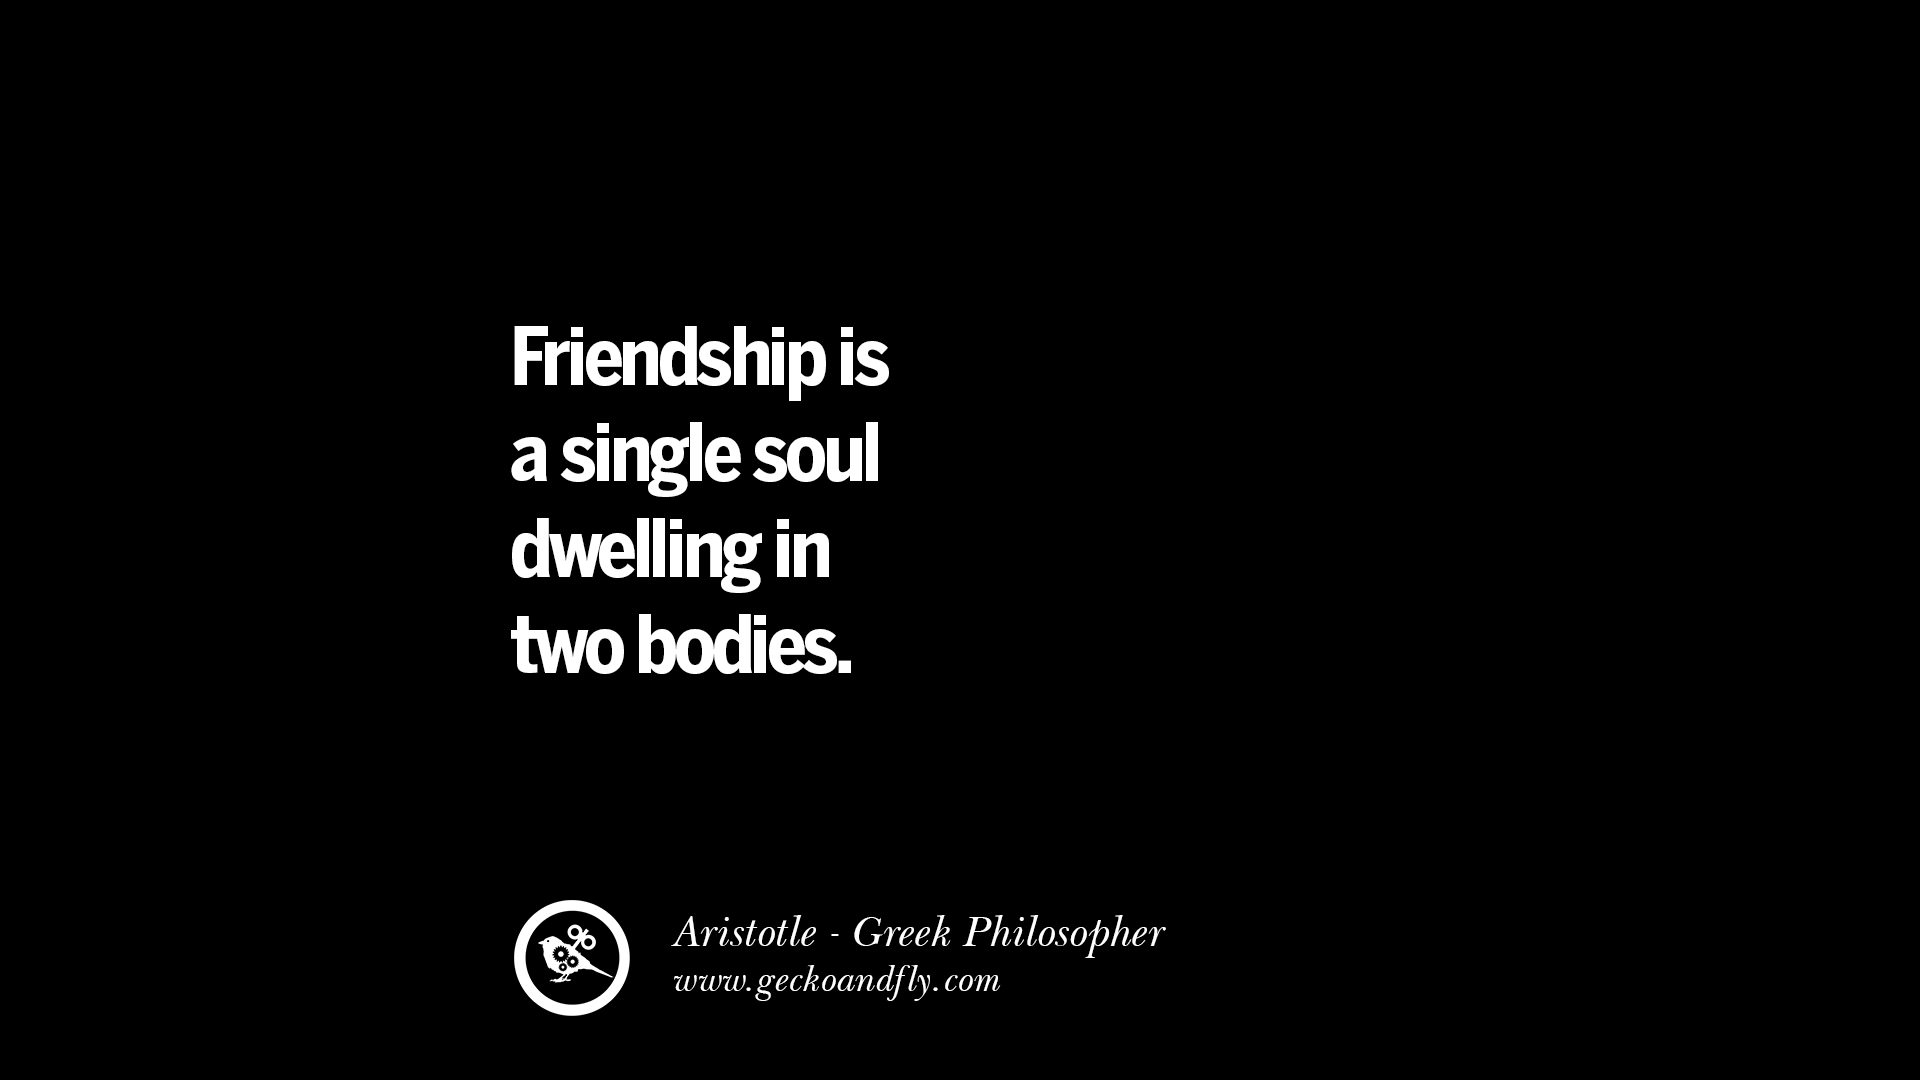 Inspiring Quotes About Friendship 40 Famous Aristotle Quotes On Ethics Love Life Politics And